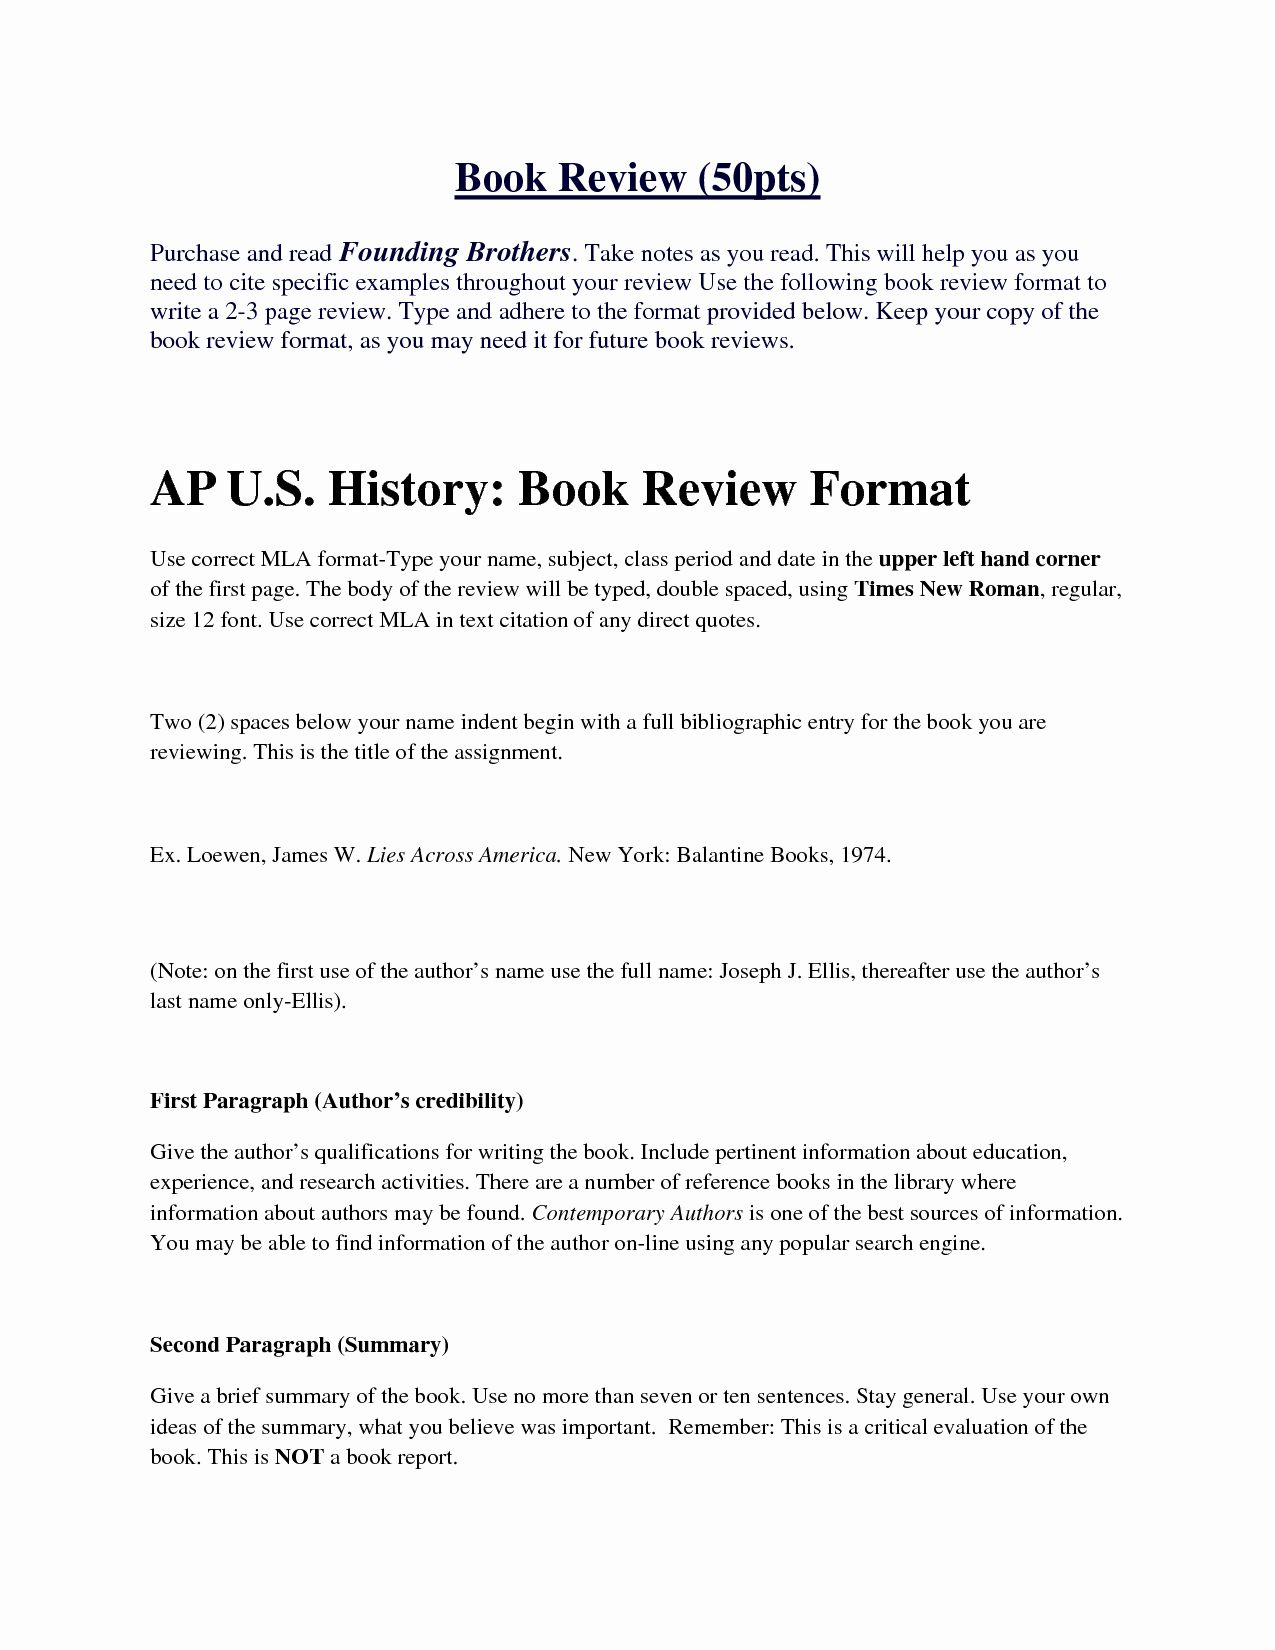 Book Analysis format Sample Best Of How to Write A Review Essay On